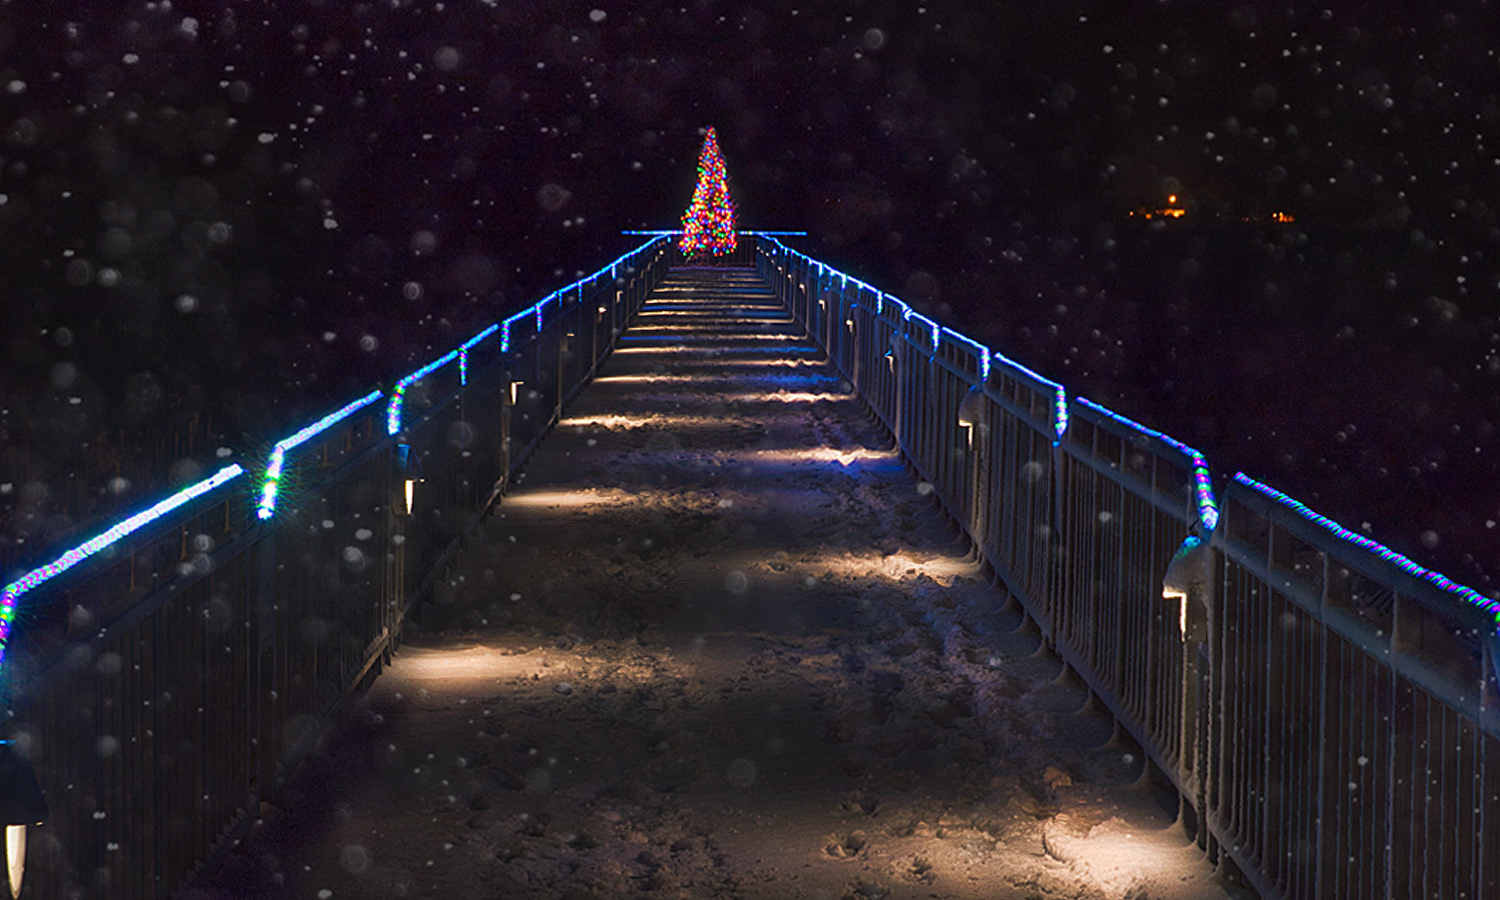 The Long Pier at the Geneva Lakefront glows with holiday lights on a snowy evening.